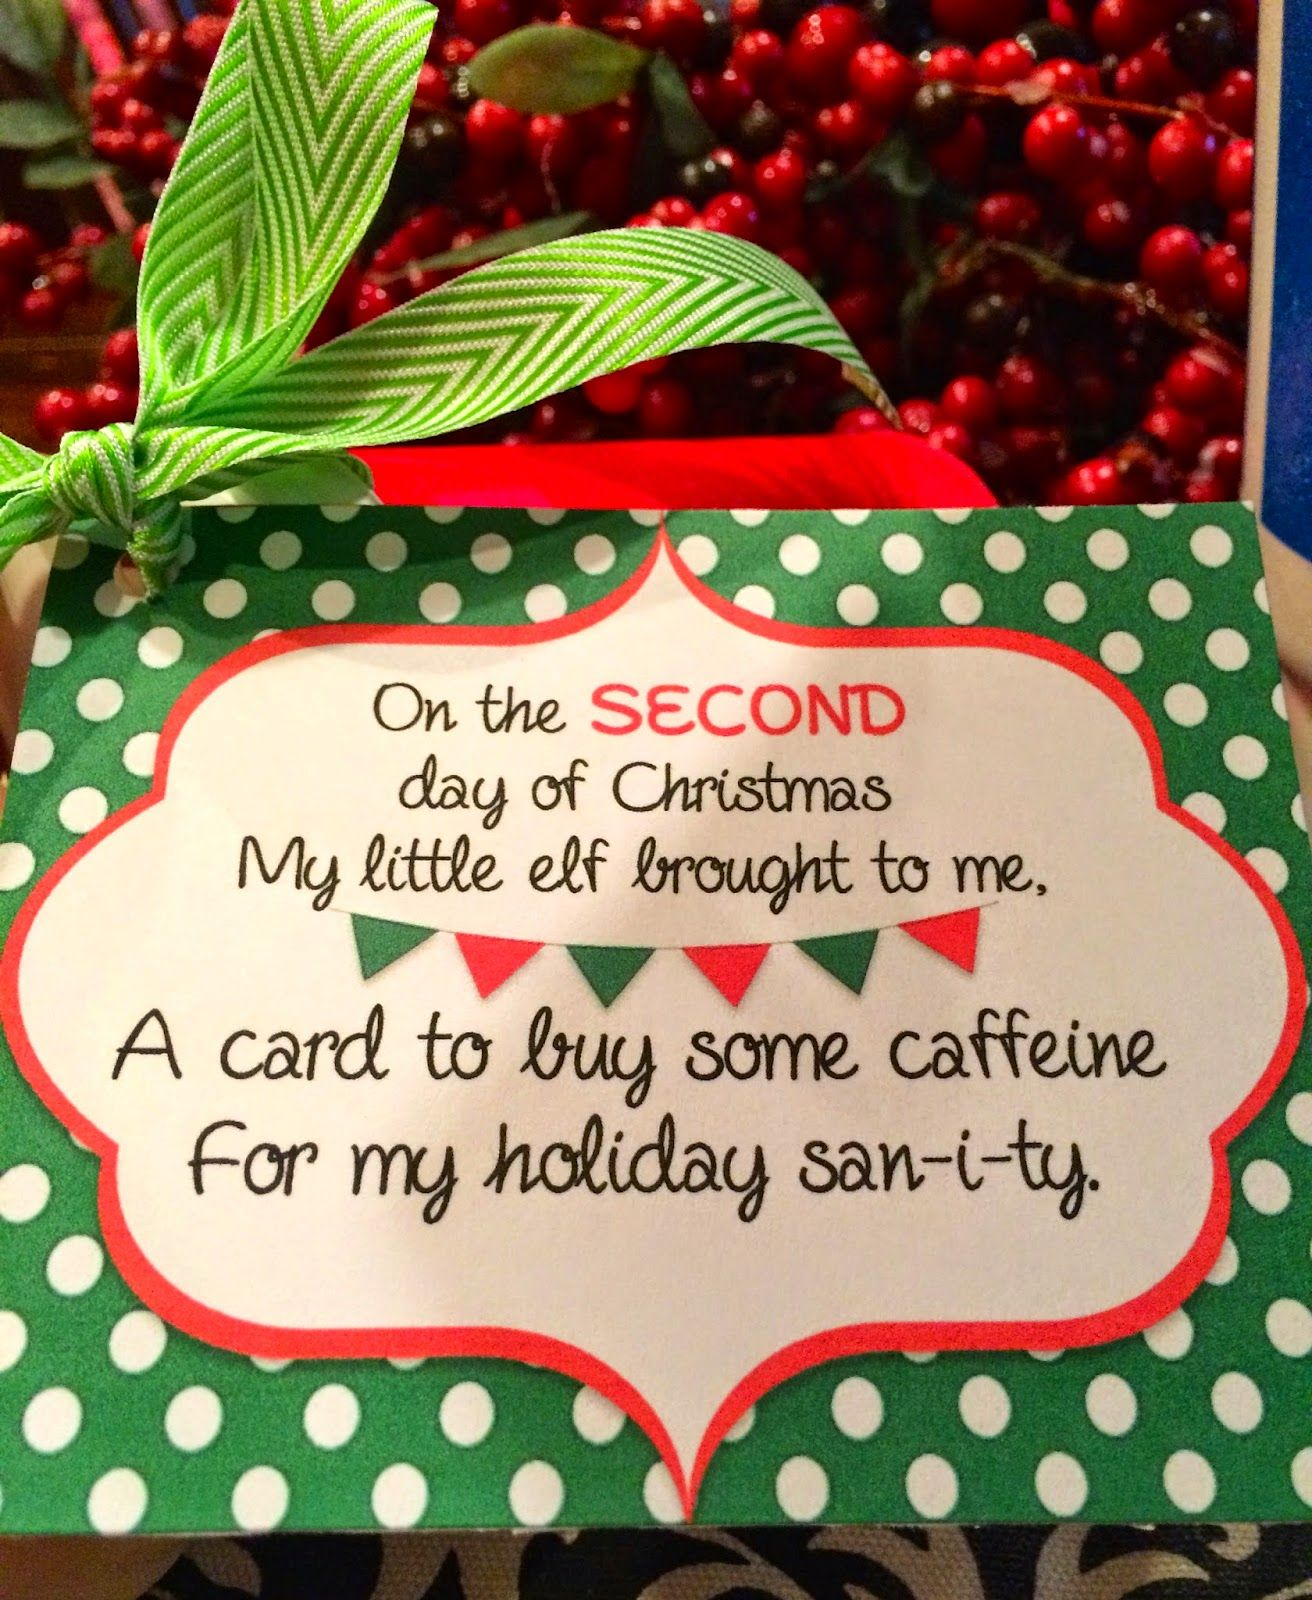 12 Days Of Christmas For Teachers Days 1 4 From Marci